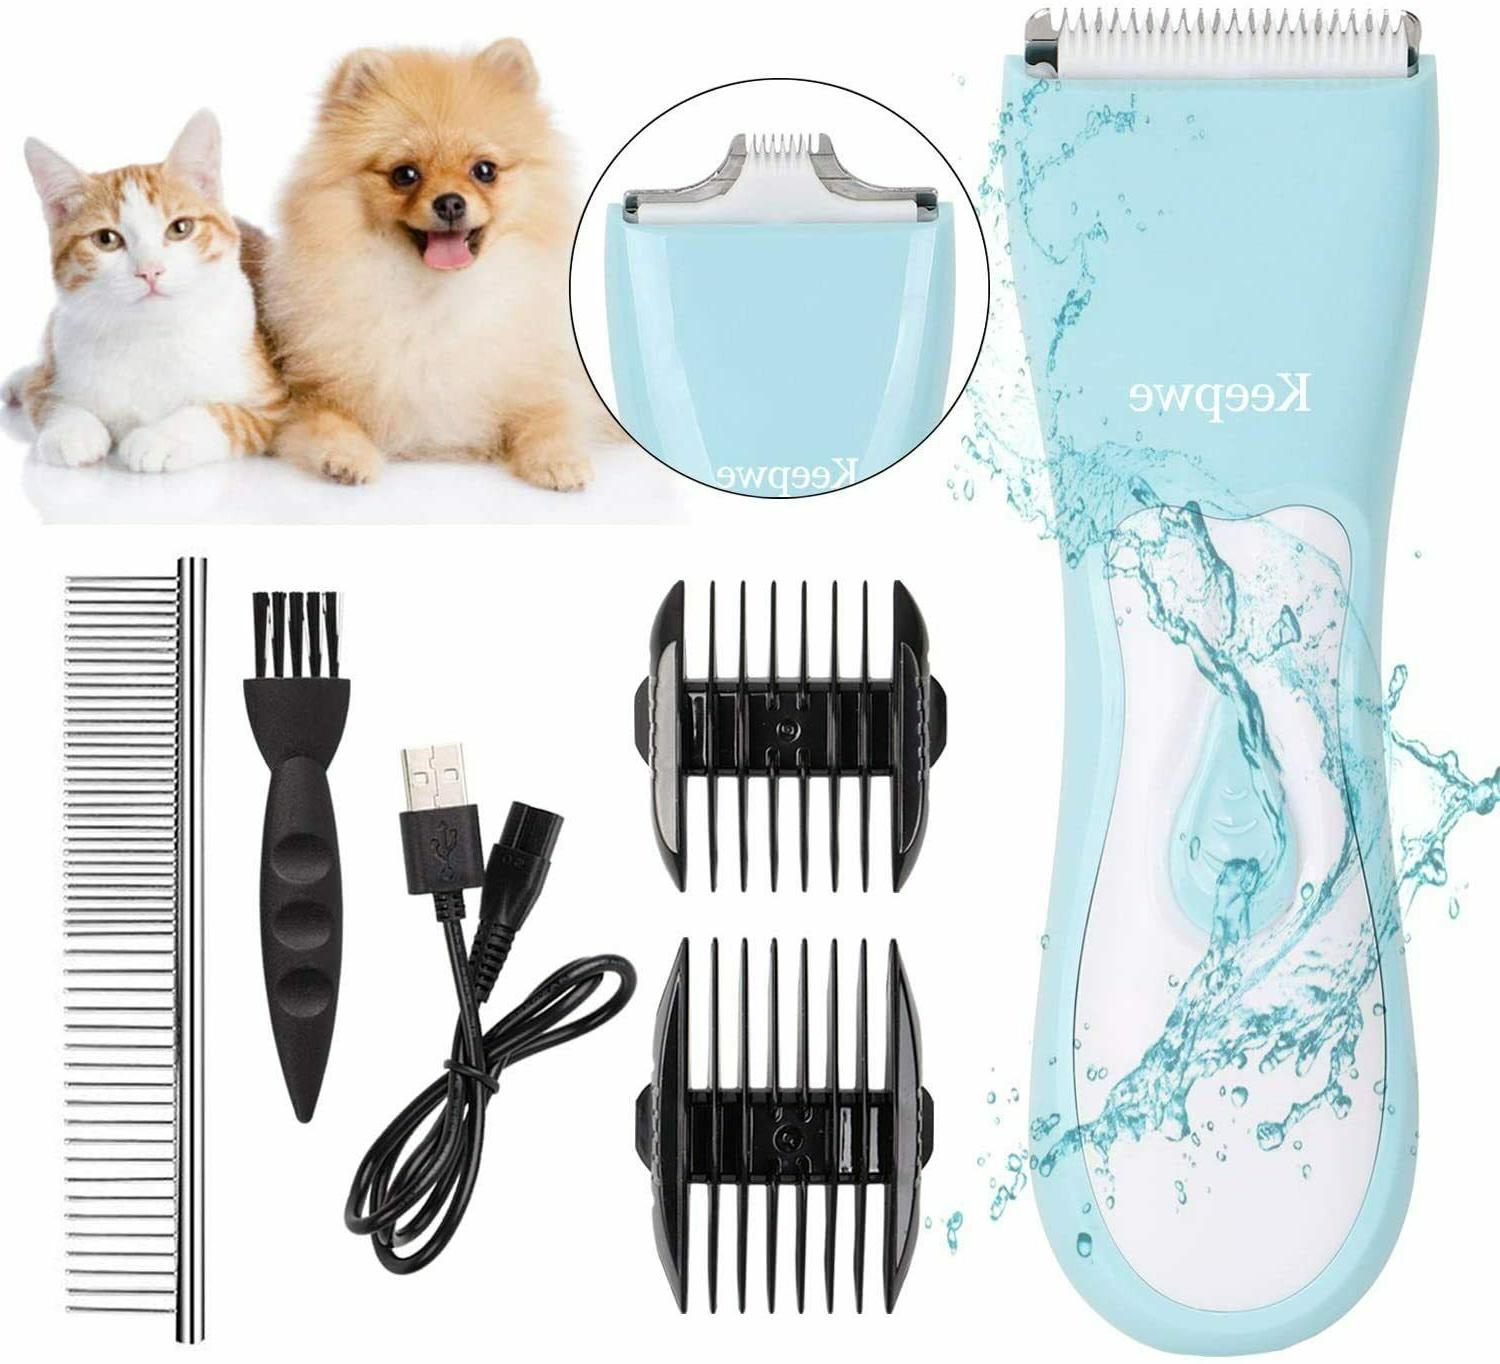 Dog Clippers in 1 Kit Double Cordless